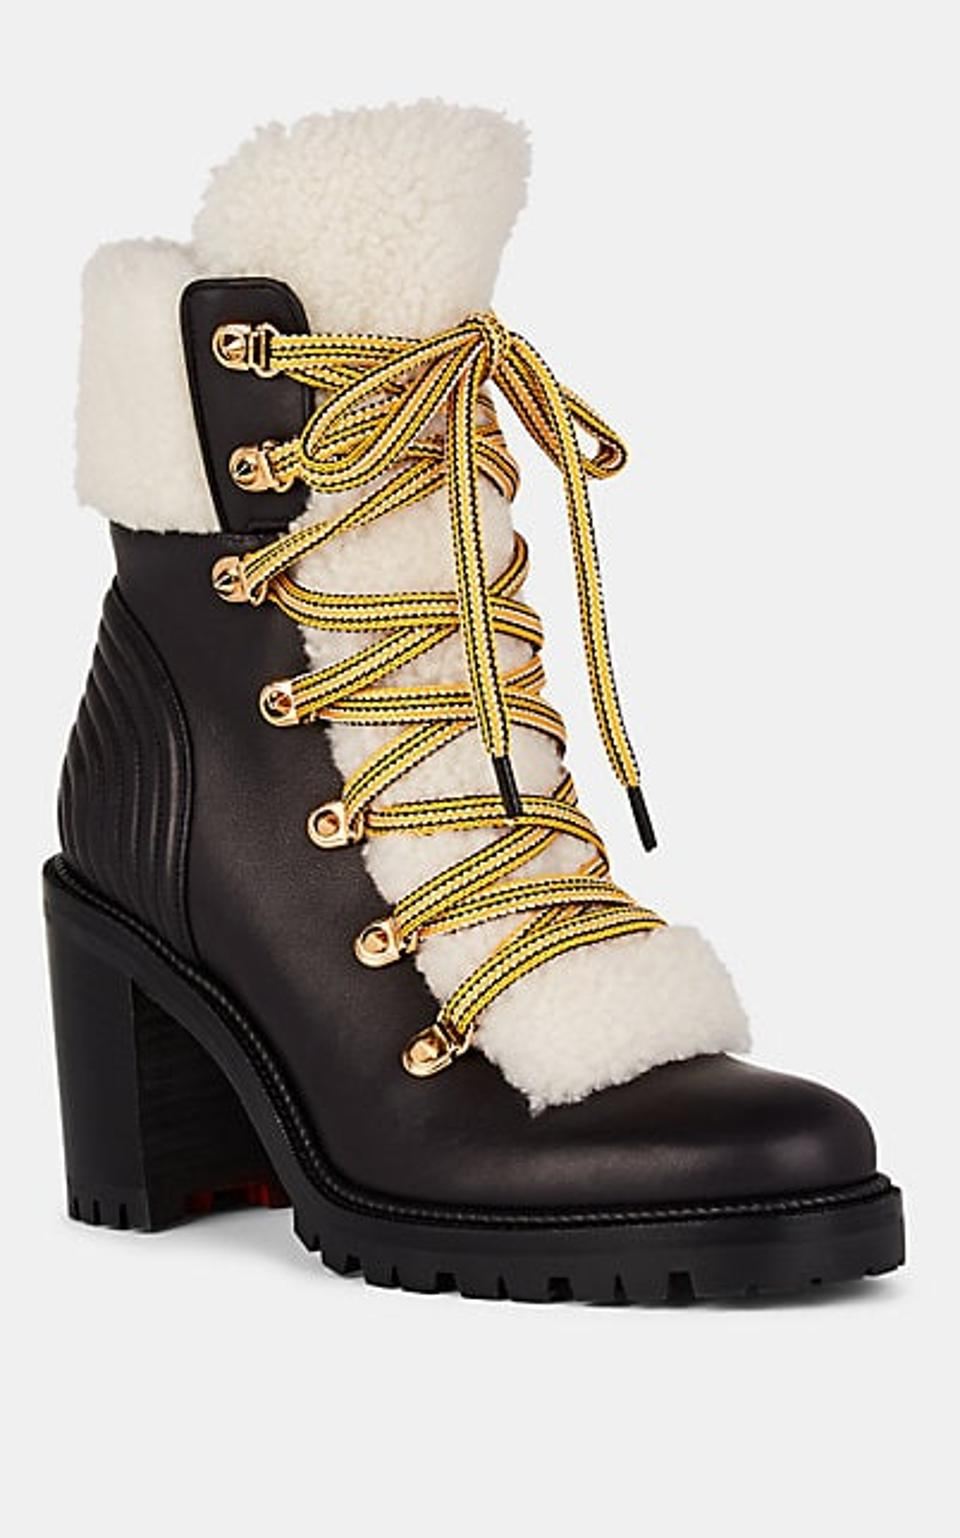 The Best Designer Winter Boots for 2019